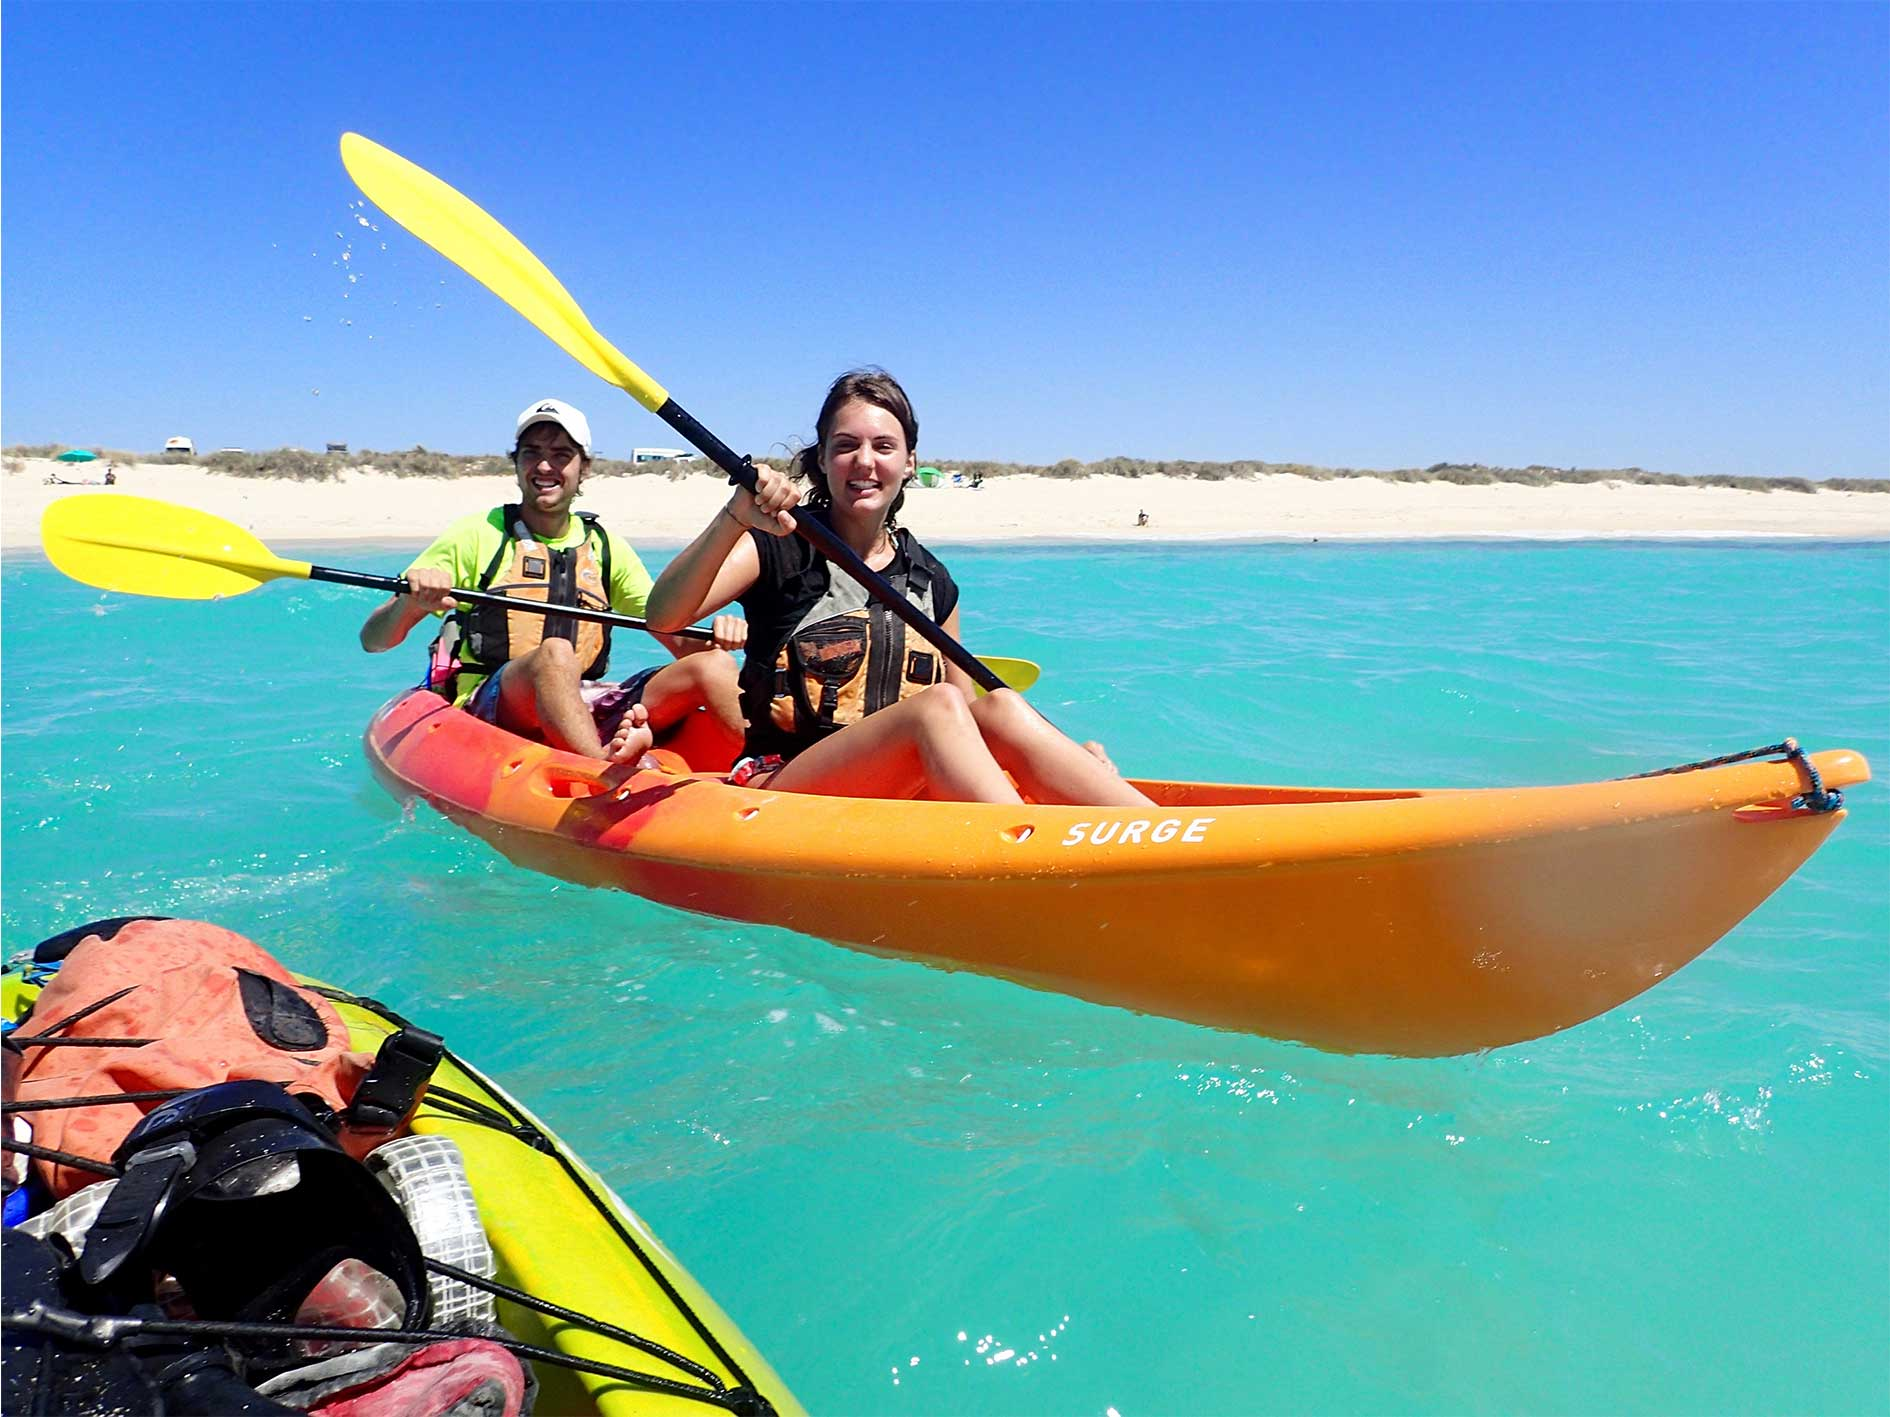 Exmouth Adventure Co, Ningaloo Reef, Snorkelling, Kayaking, Whale Shark, Cape Range National Park, Western Australia, Kayaking, Surfing, SUP, Stand Up Paddle Board, Arvo Cruiser, sea kayak tour, Gift Vouchers, Gift Vouchers Exmouth, Gift Vouchers Ningaloo, Experience Gifting